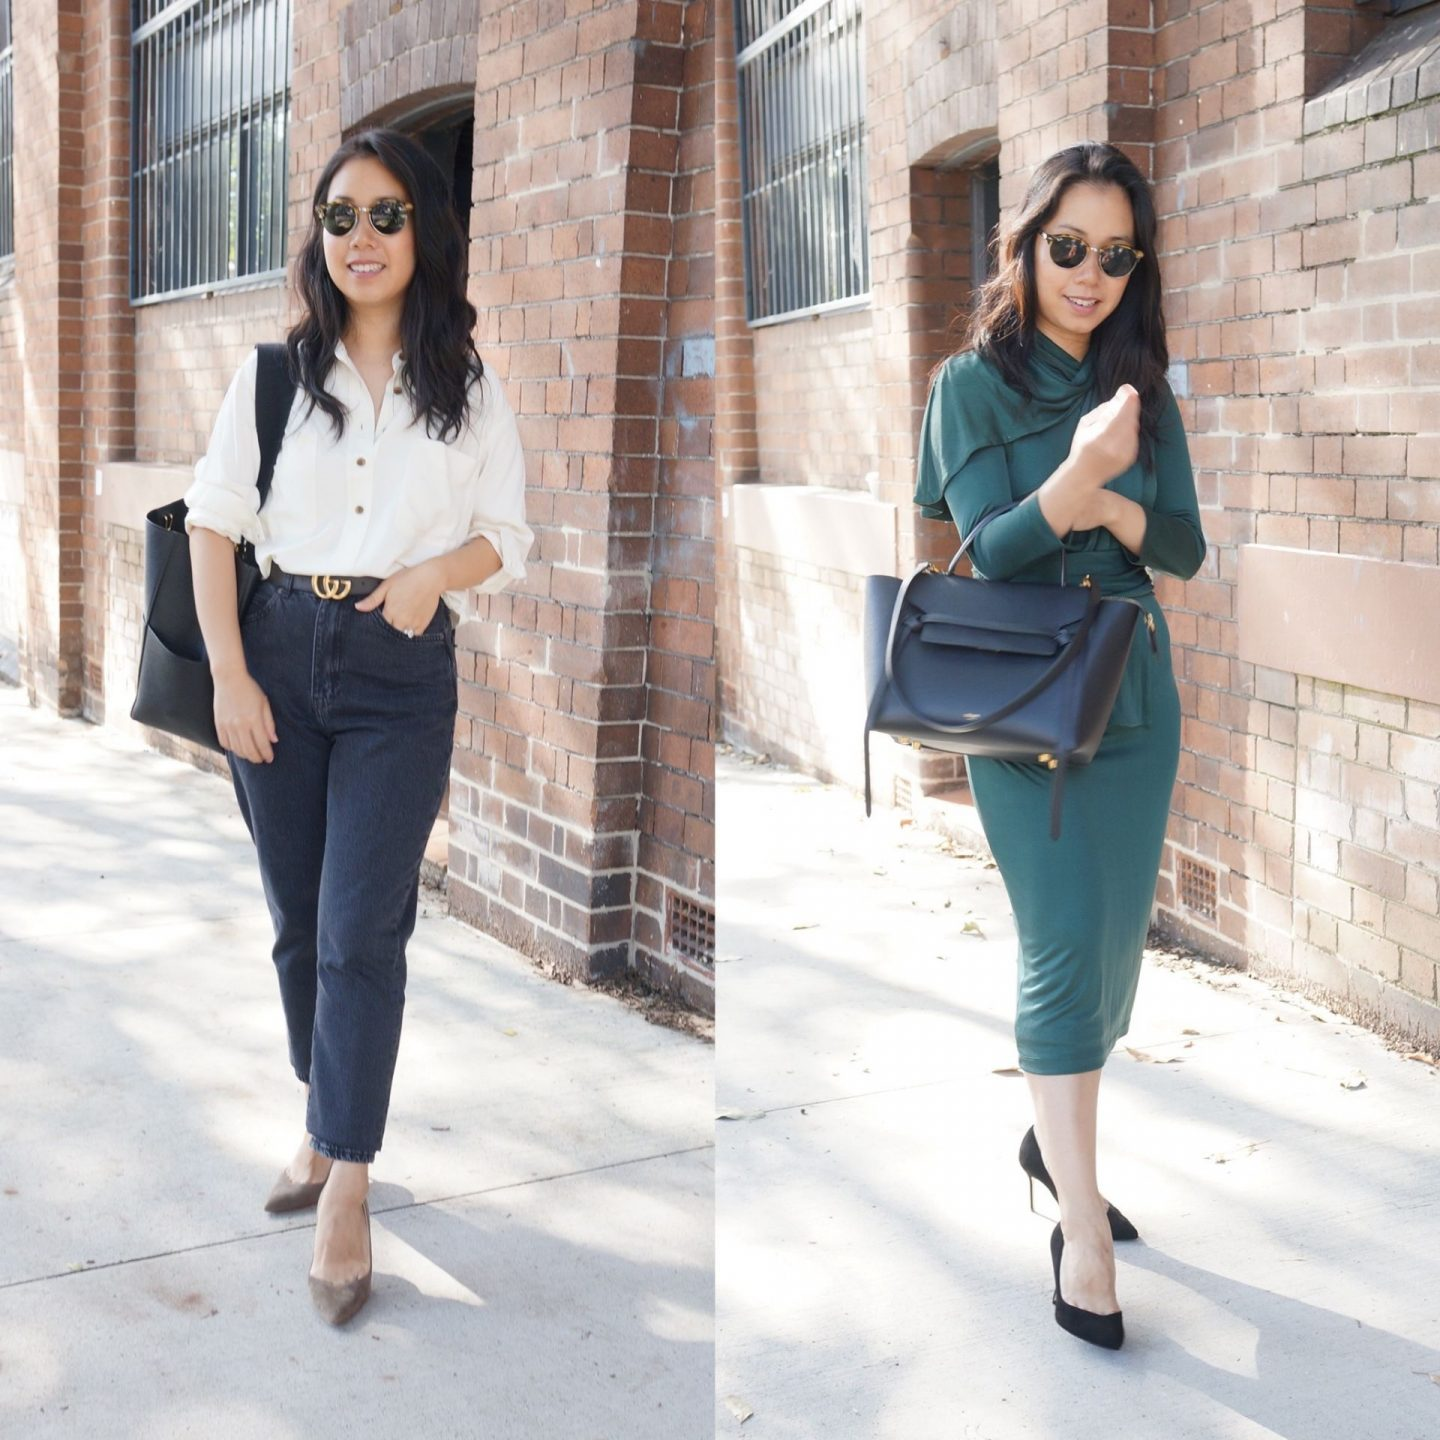 woman wearing sarah flint perfect pumps in blog post about favourite work shoes to wear to the office